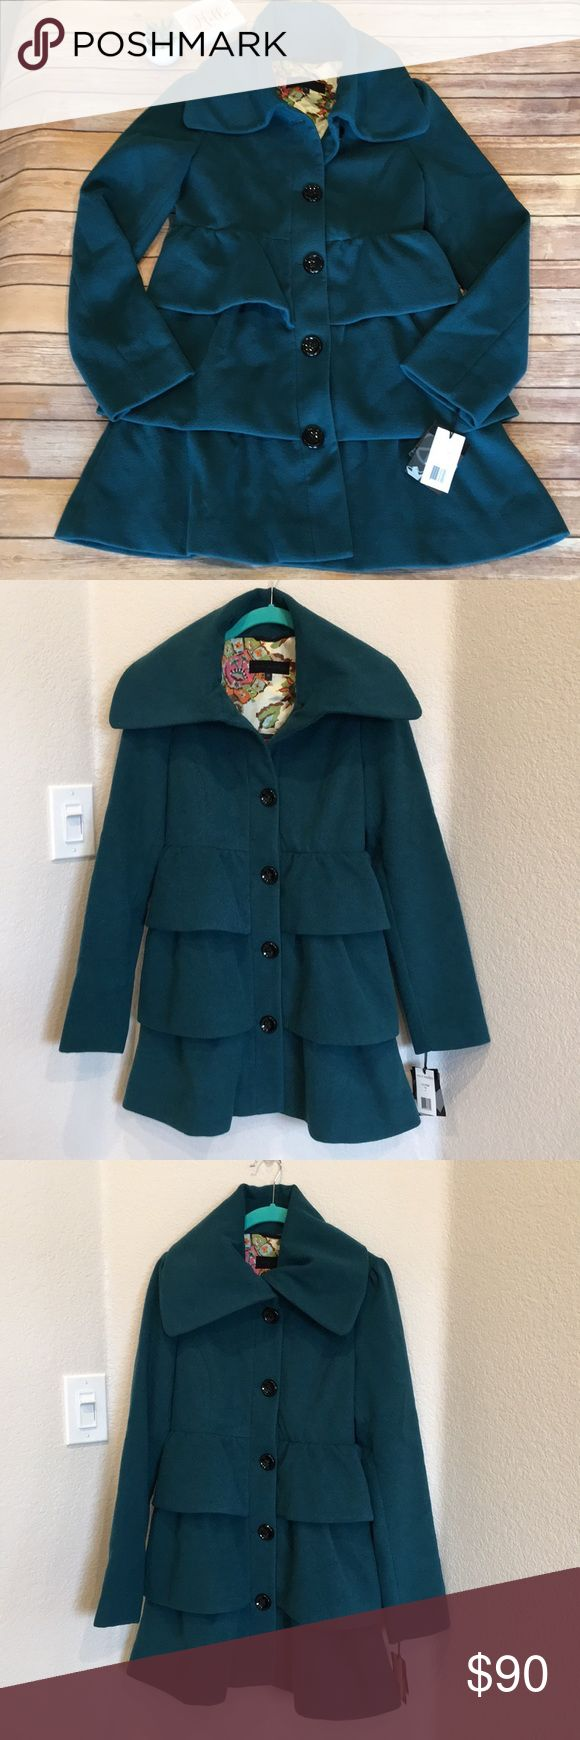 """🦋Steve Madden Ruffled Pea Coat NWT (Ordered online.  No price tag.  Includes extra buttons as well). So feminine and gorgeous!!!  Beautiful """"Teal"""" green per tag.  Please see photos for approximate measurements of item lying flat.    🖤Thanks for stopping by! 🦋M58 Steve Madden Jackets & Coats Pea Coats"""